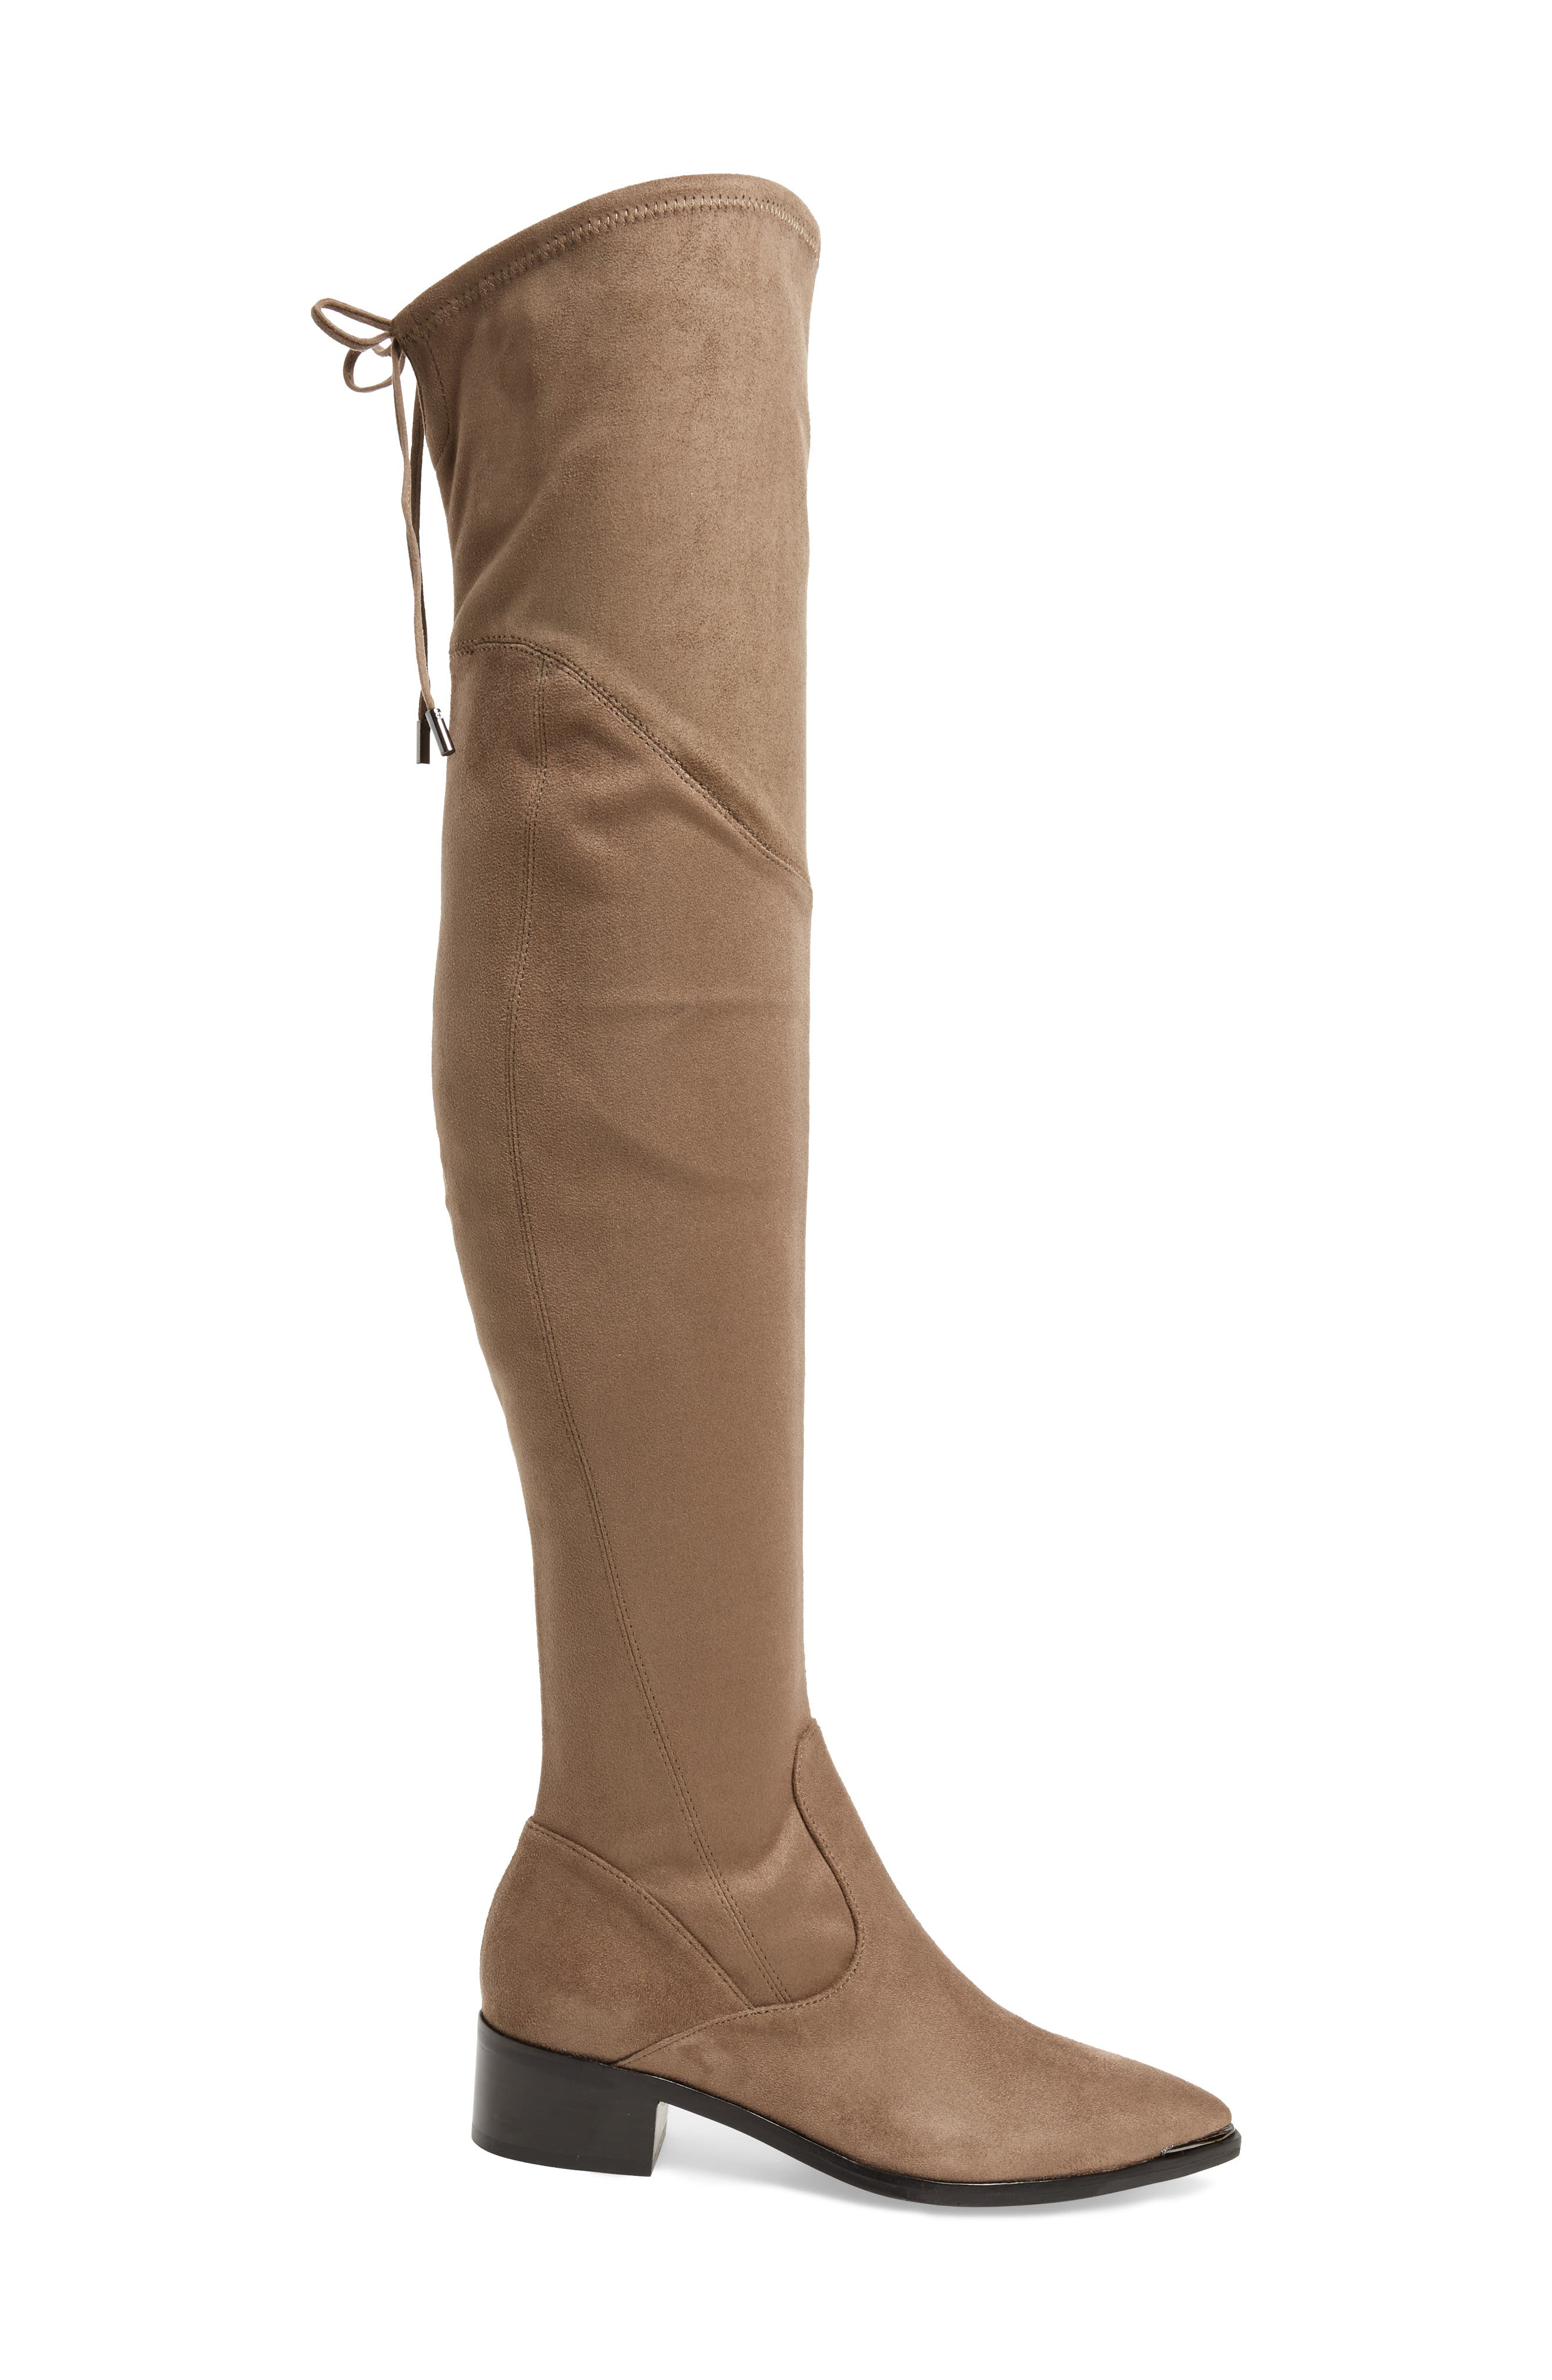 Yuna Over the Knee Boot,                             Alternate thumbnail 3, color,                             Taupe Faux Suede